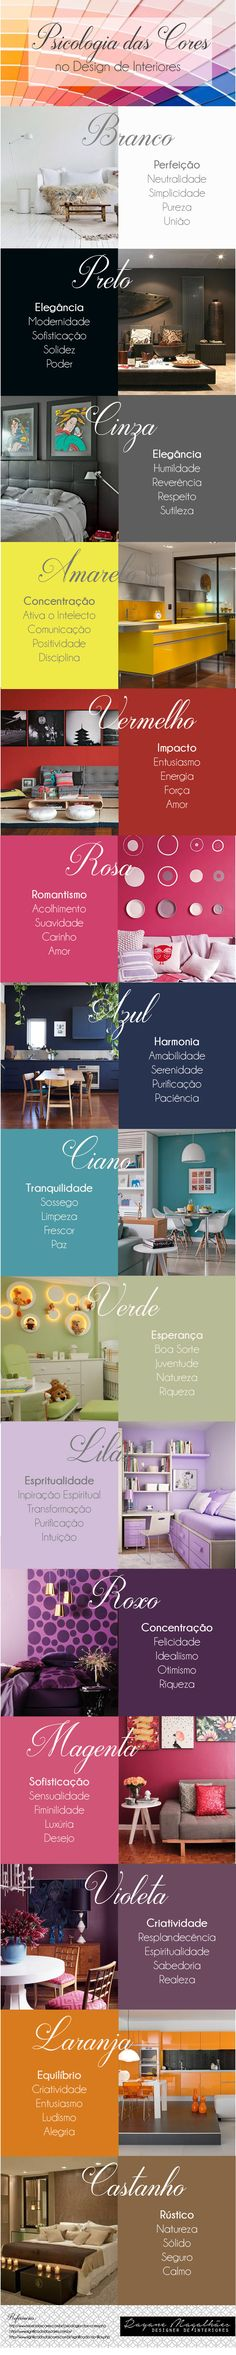 PSICOLOGIA DAS CORES Web Design, House Design, Home Staging, Art Decor, Diy Home Decor, Room Decor, Decor Ideas, Color Psychology, Interior Decorating